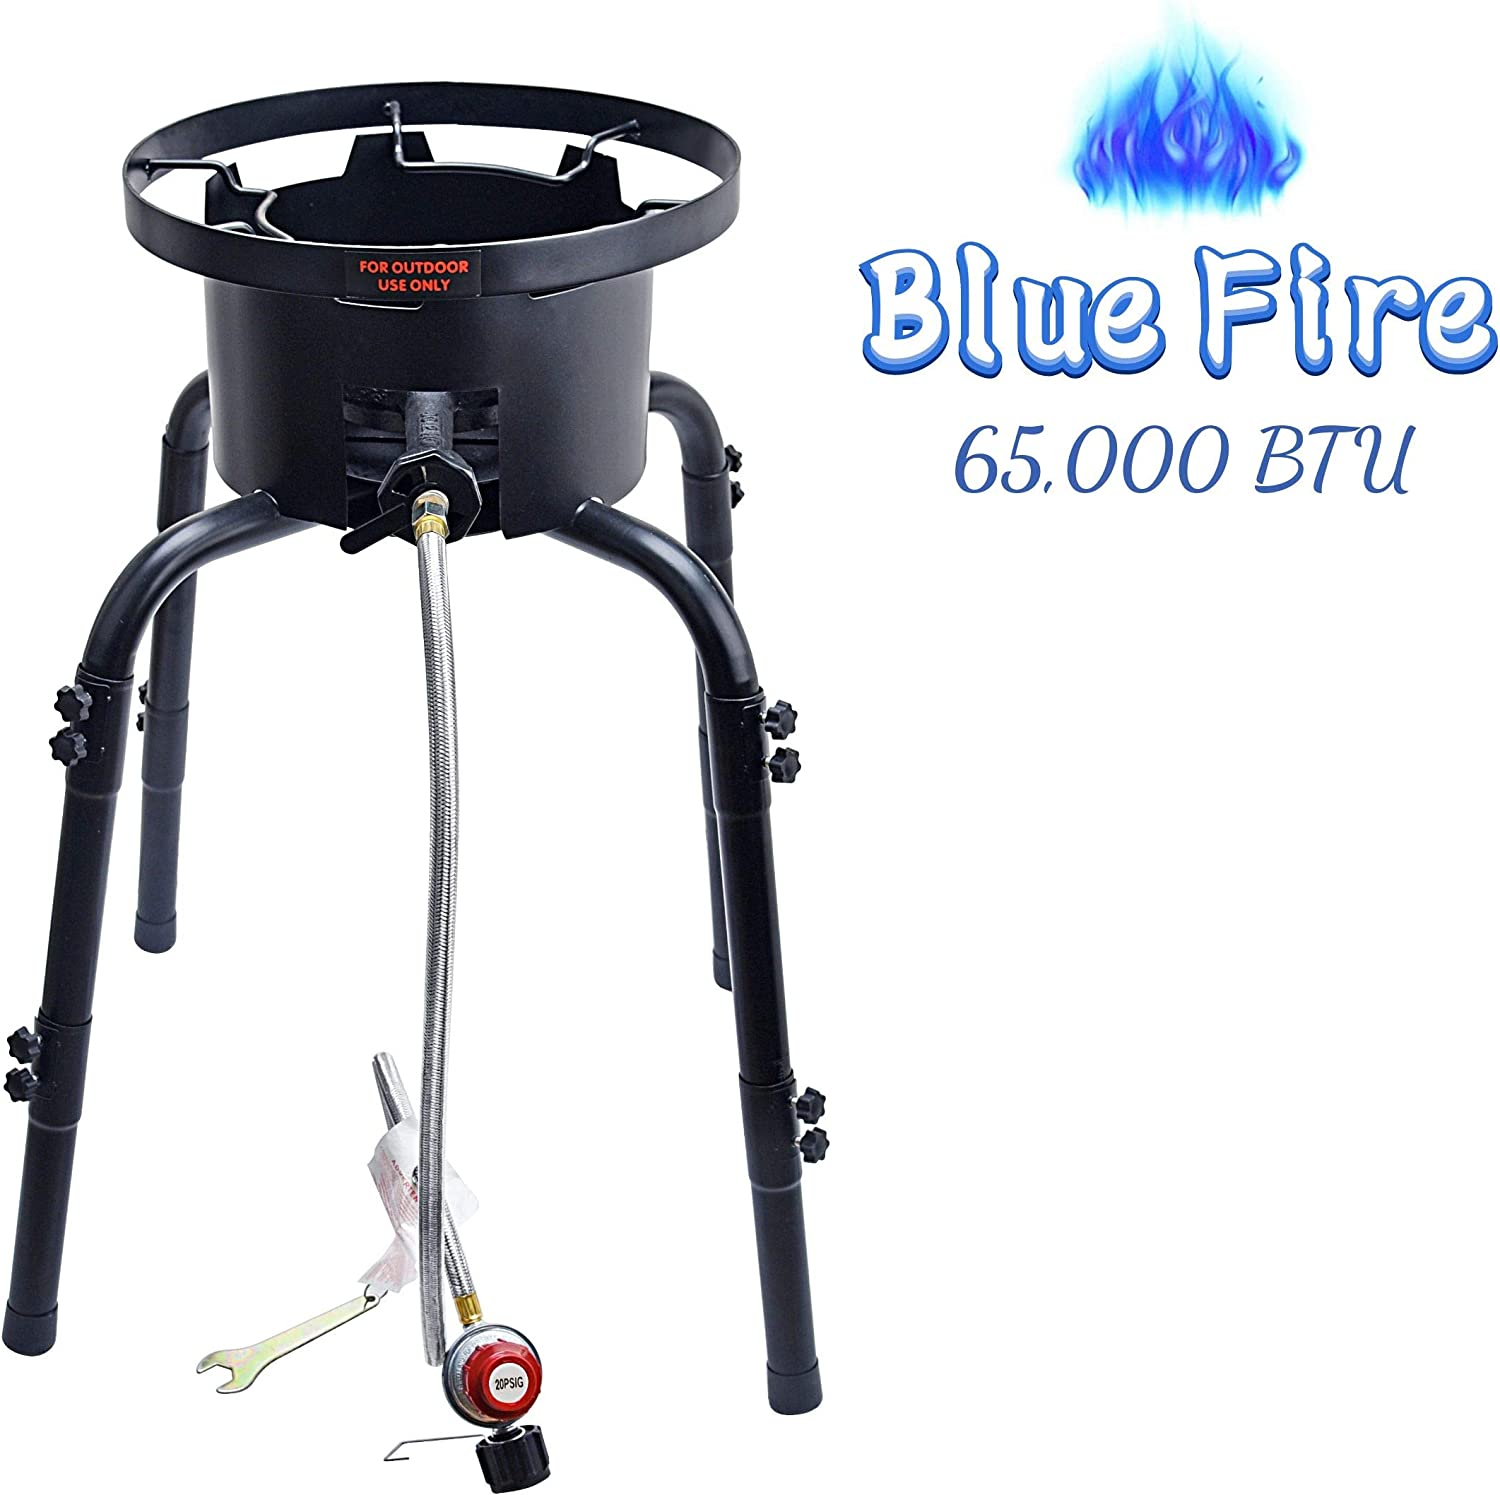 ARC USA,7382M Outdoor Single Burner Stove with Adjustable Legs,High Pressure Propane Burner,Portable Gas Cooker,Camping Burner Cooking Stove, 0-20PSI Adjustable Regulator and Hose,perfect for backyard